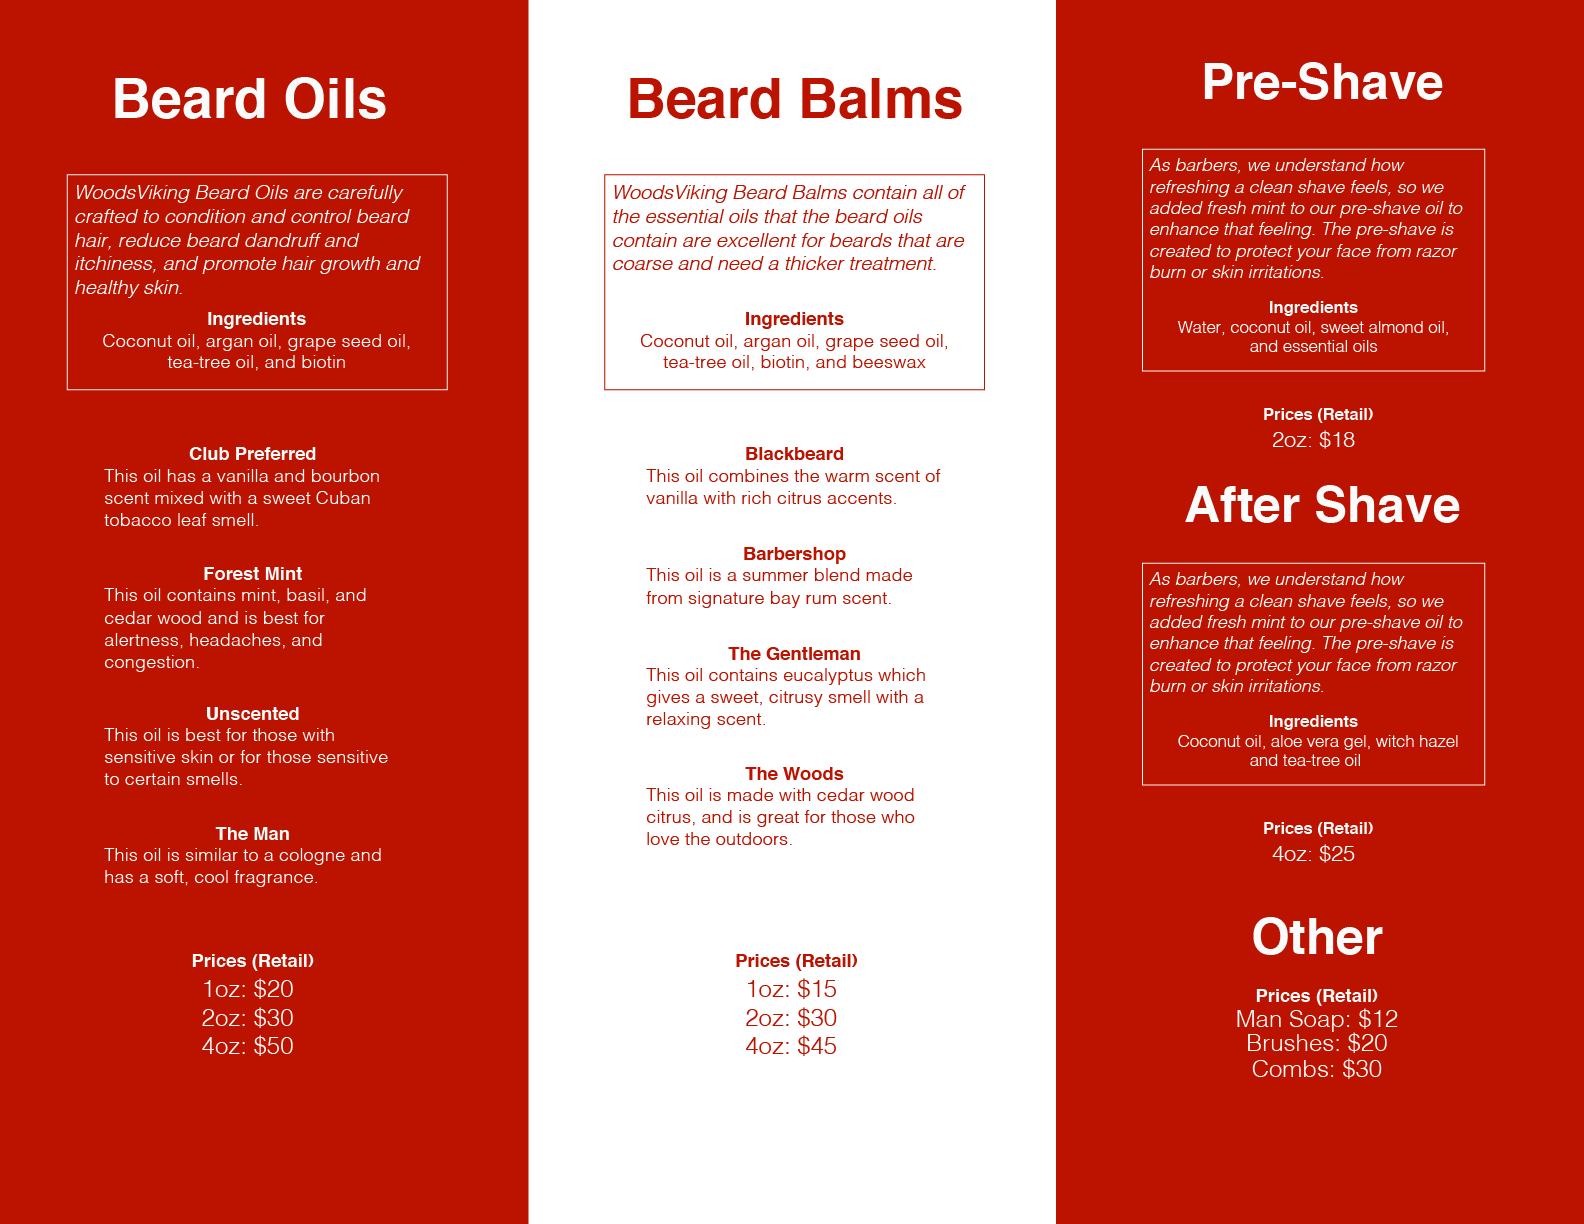 Editorial. - I created a layout for a brochure to showcase WoodsViking products, services, and information.